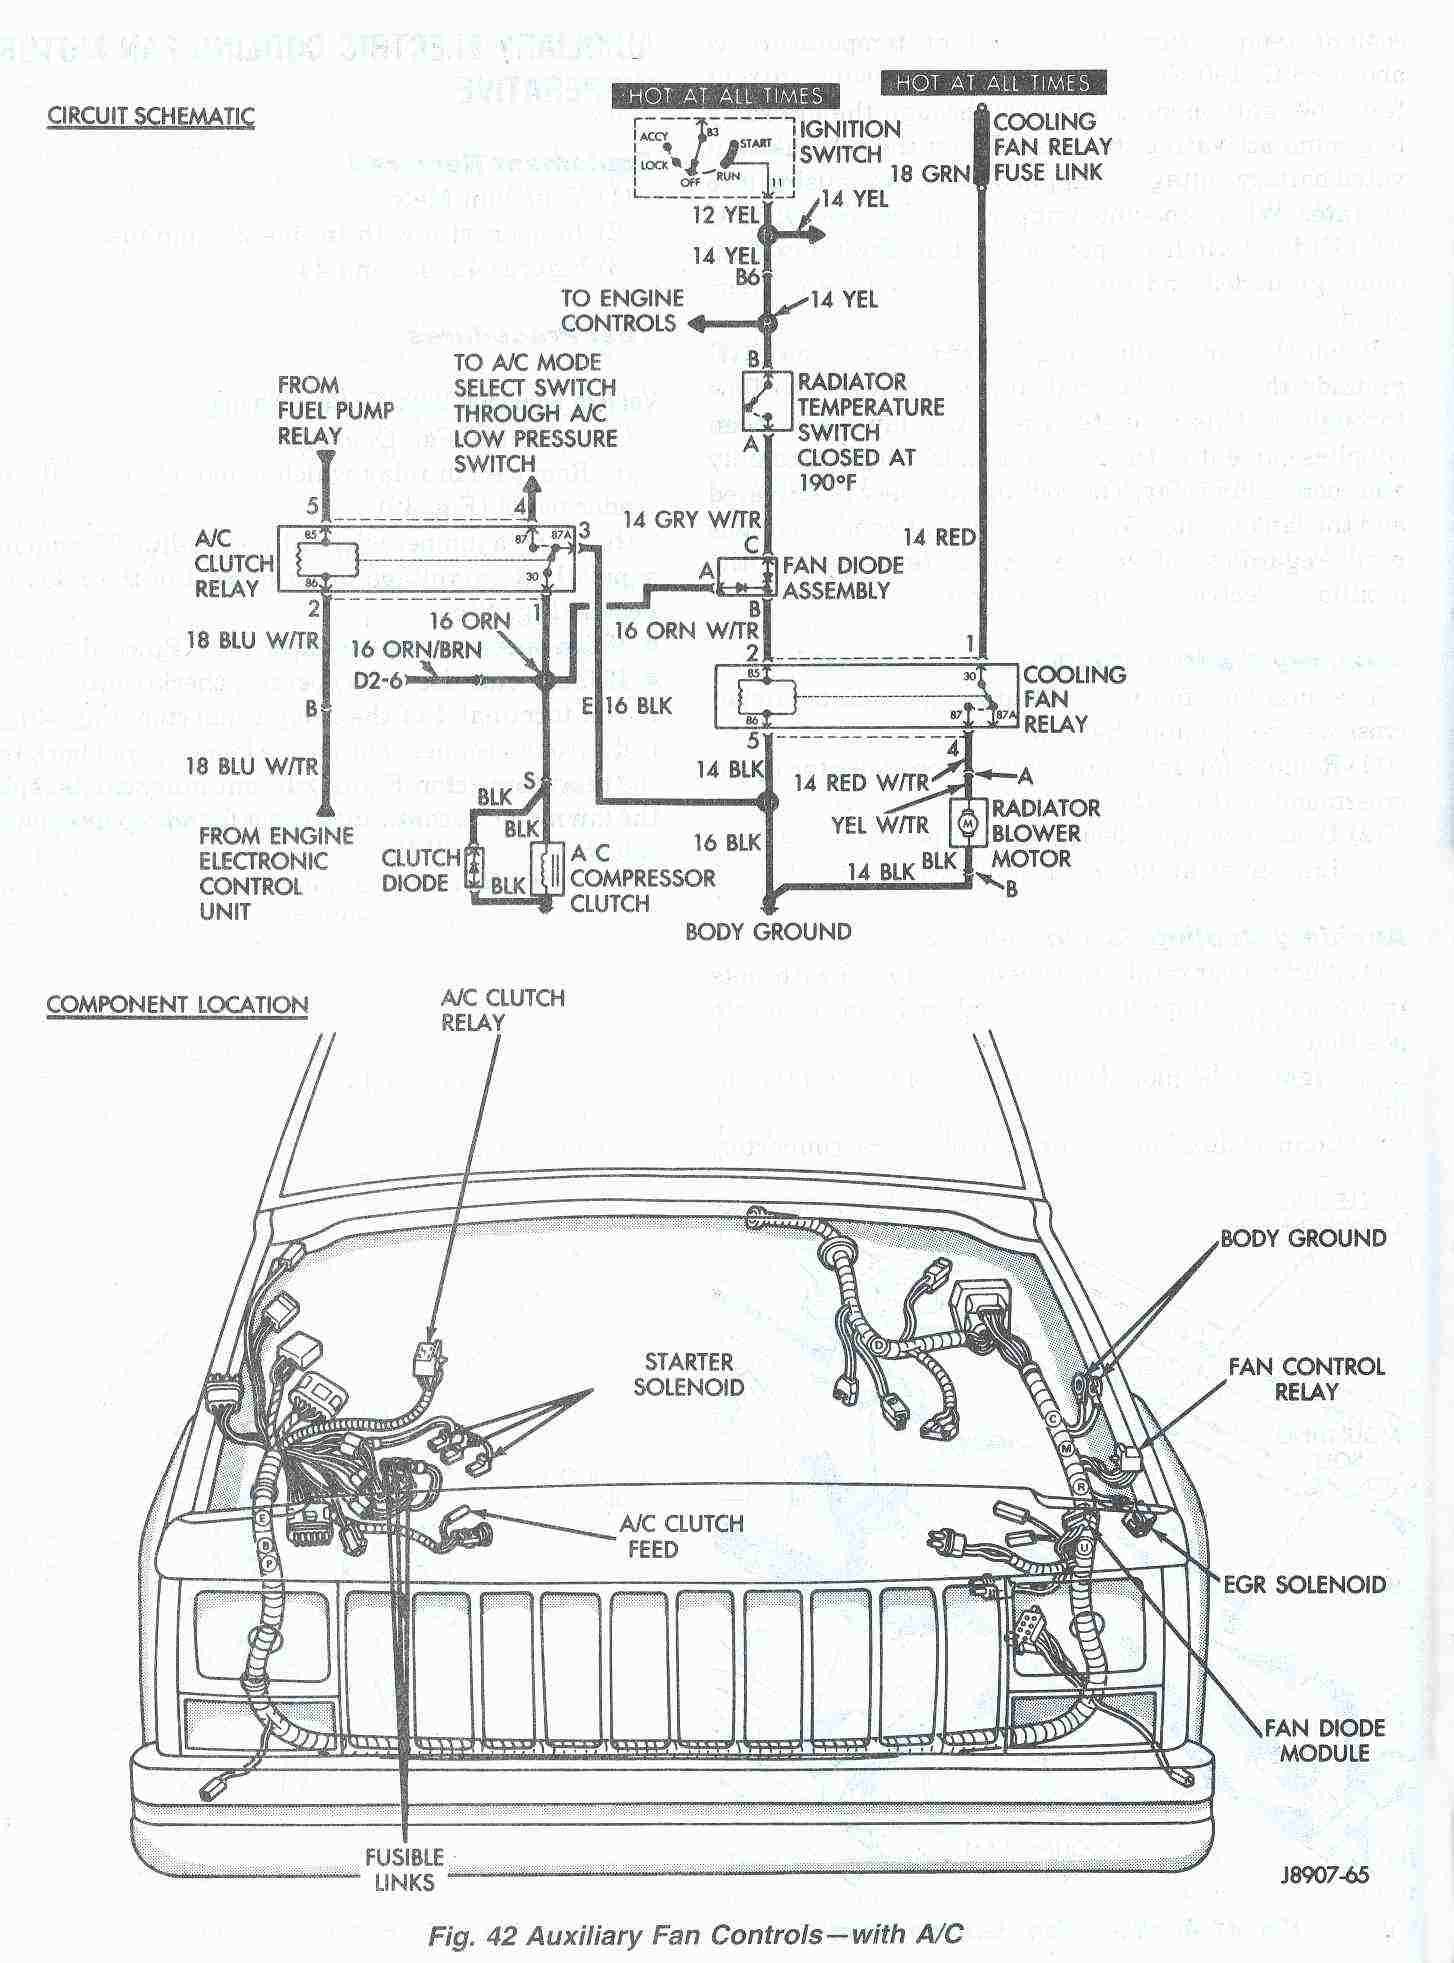 e8c83109bad6c41d377df8c1cb7a8dc4 jeep xj wiring diagram gmc jimmy wiring diagram \u2022 free wiring Home AC System Diagram at n-0.co